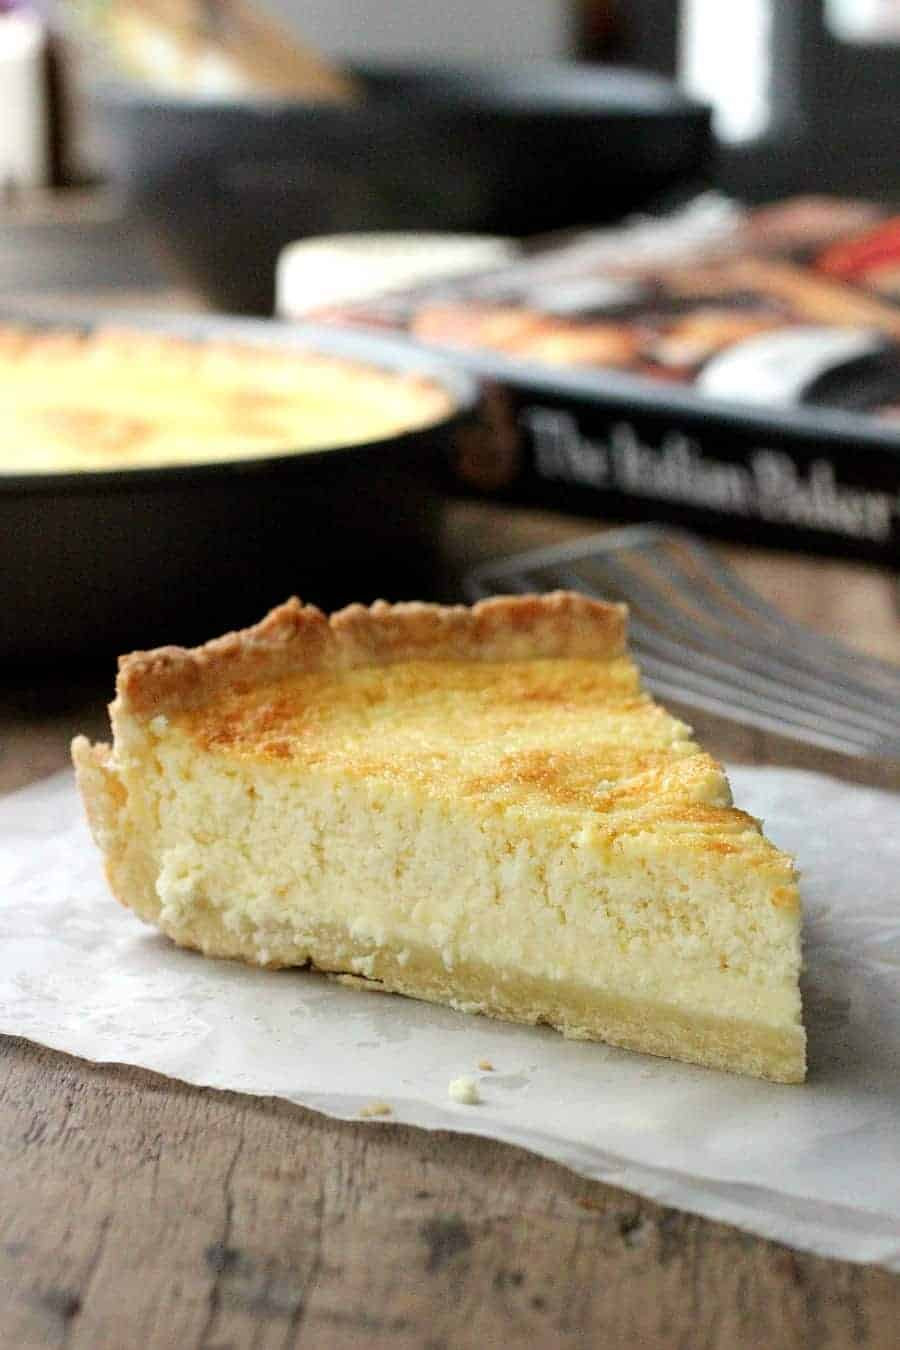 Slice of amazing Lemon ricotta pie